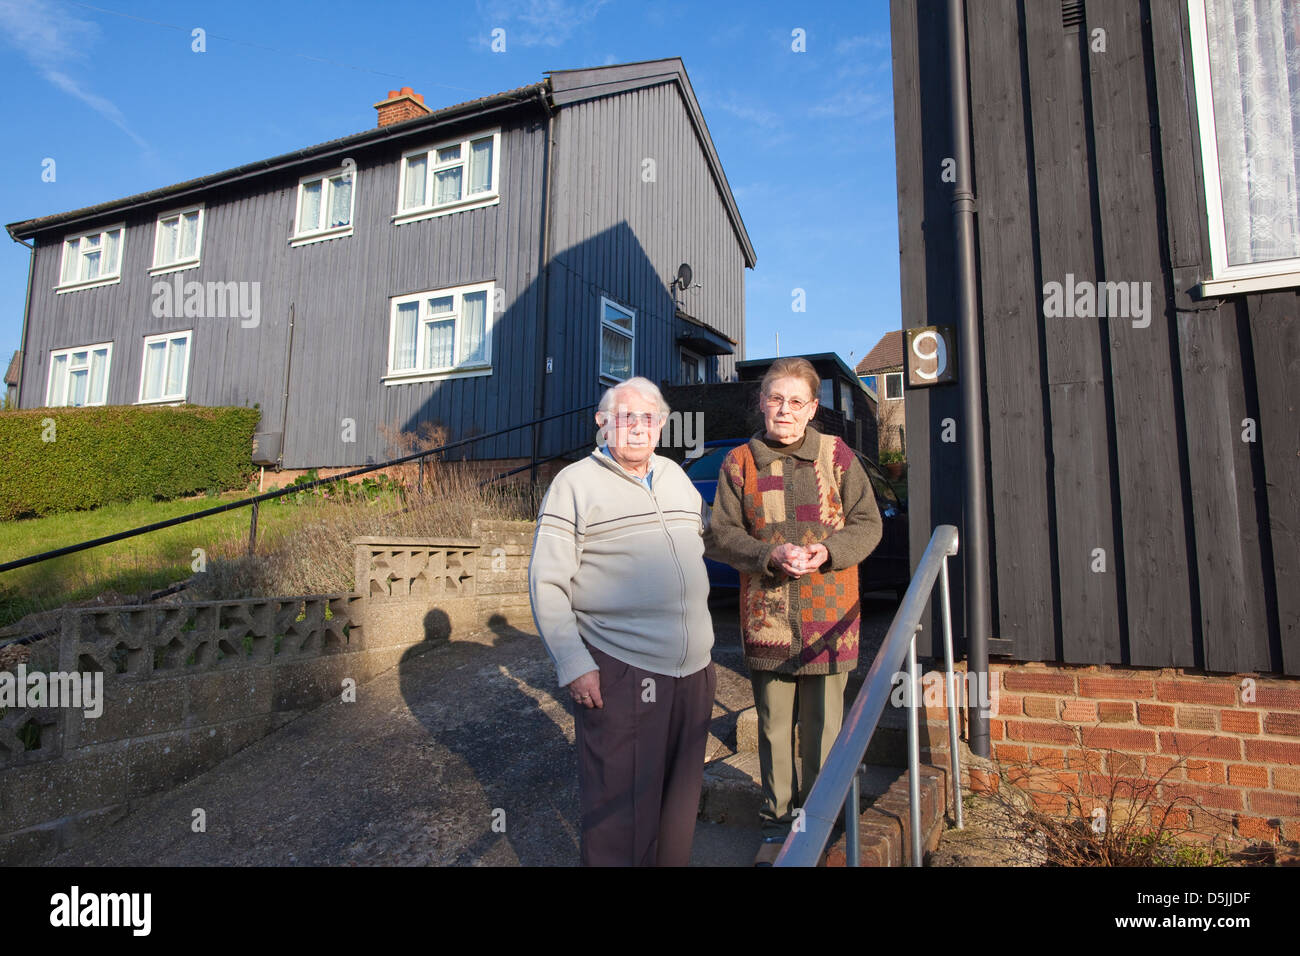 Norway Cresent where after the Great Flood of 1953 the Norwegian government donated wooden homes to house families - Stock Image